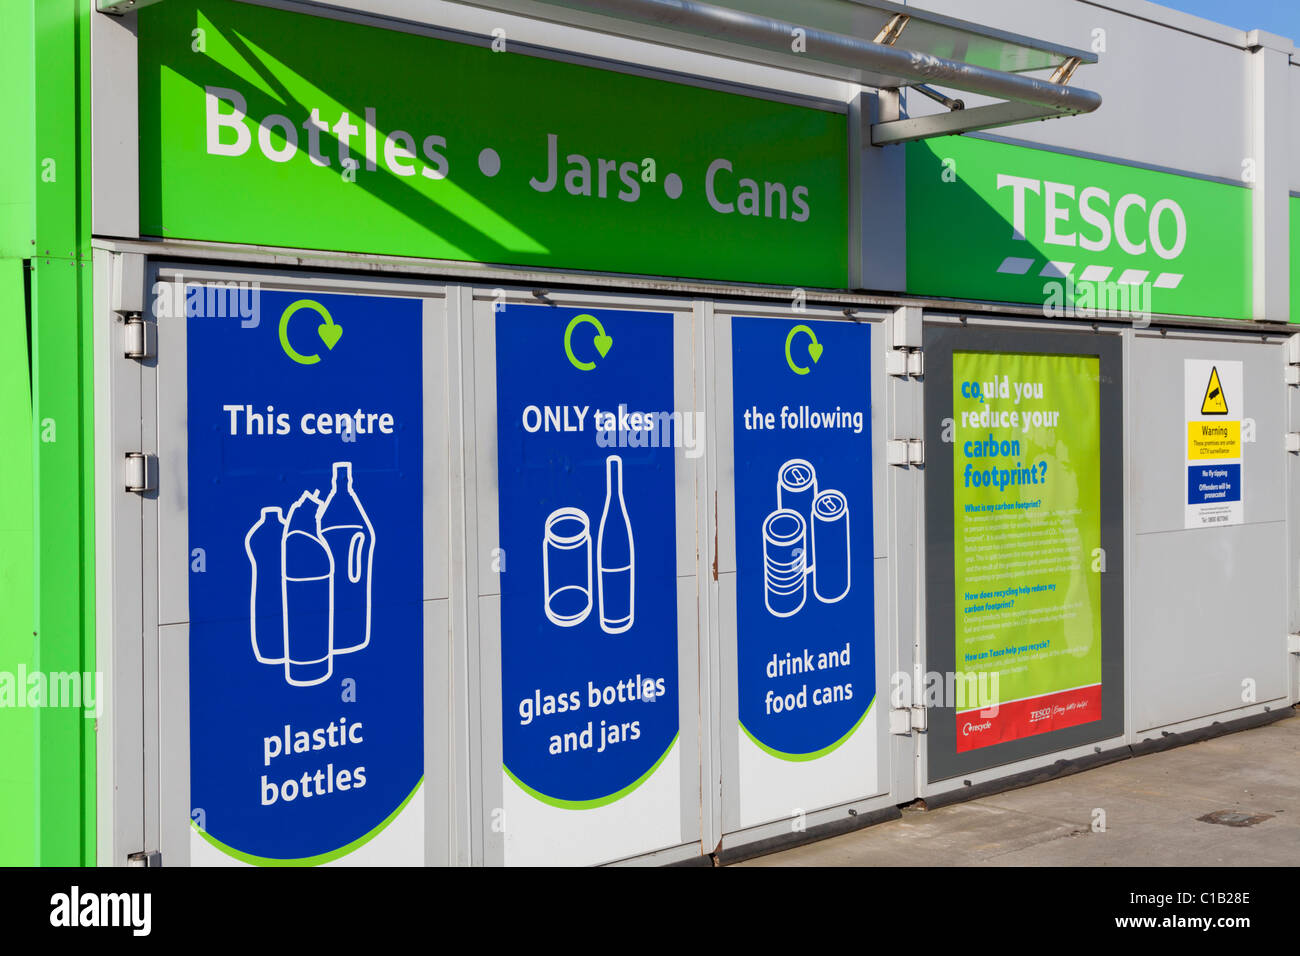 Tesco Recycling Stock Photos Amp Tesco Recycling Stock